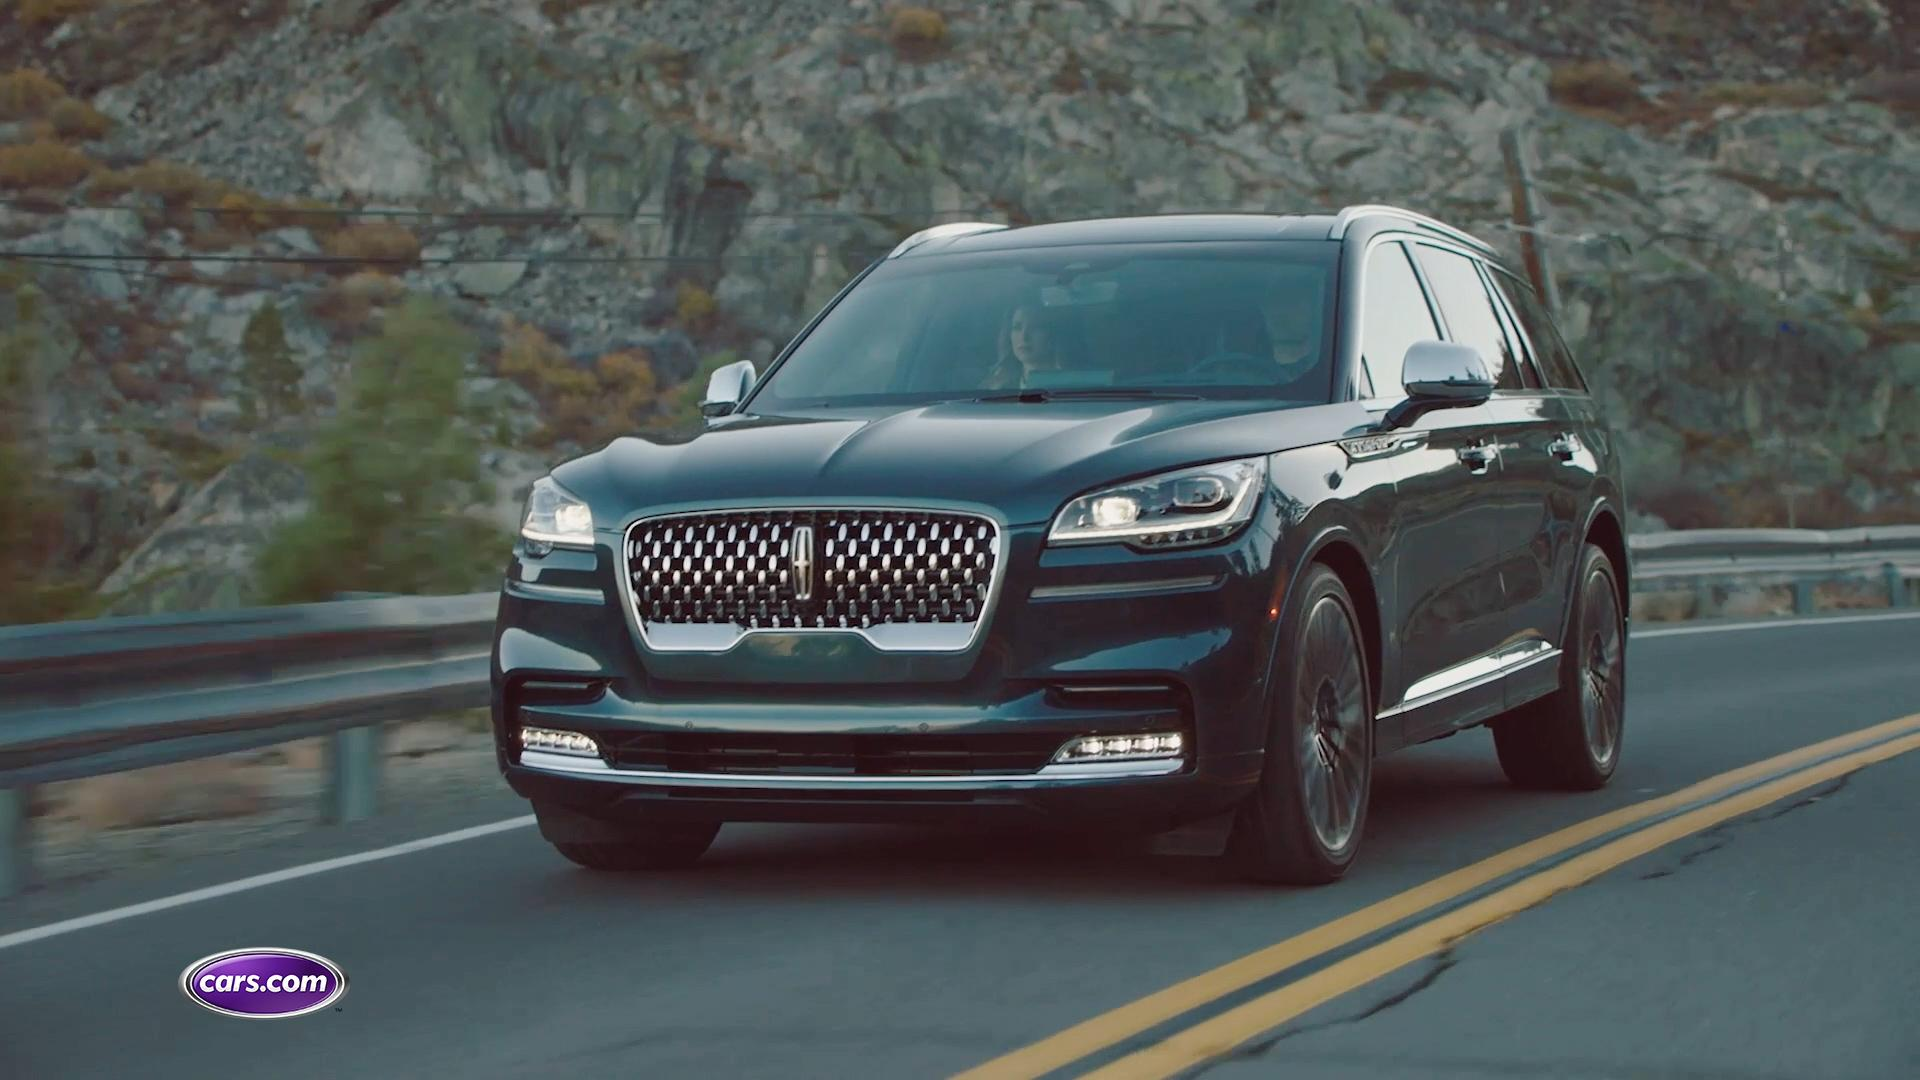 Video: 2020 Lincoln Aviator: First Look — Cars.com